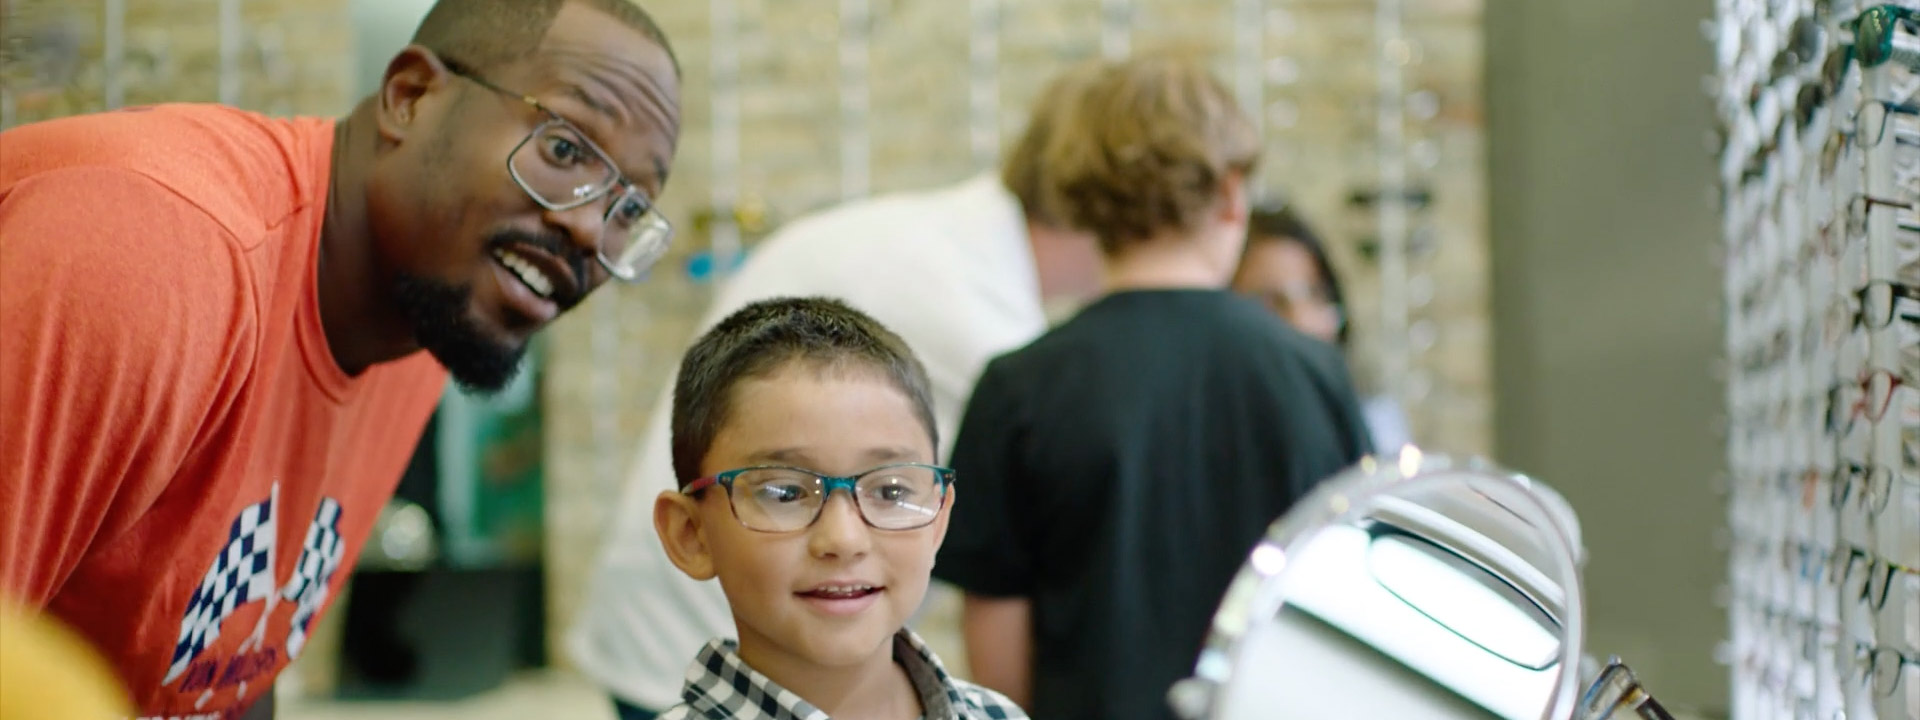 Von Miller provides low-income Denver children with eye care and corrective eyewear through Von's Vision.